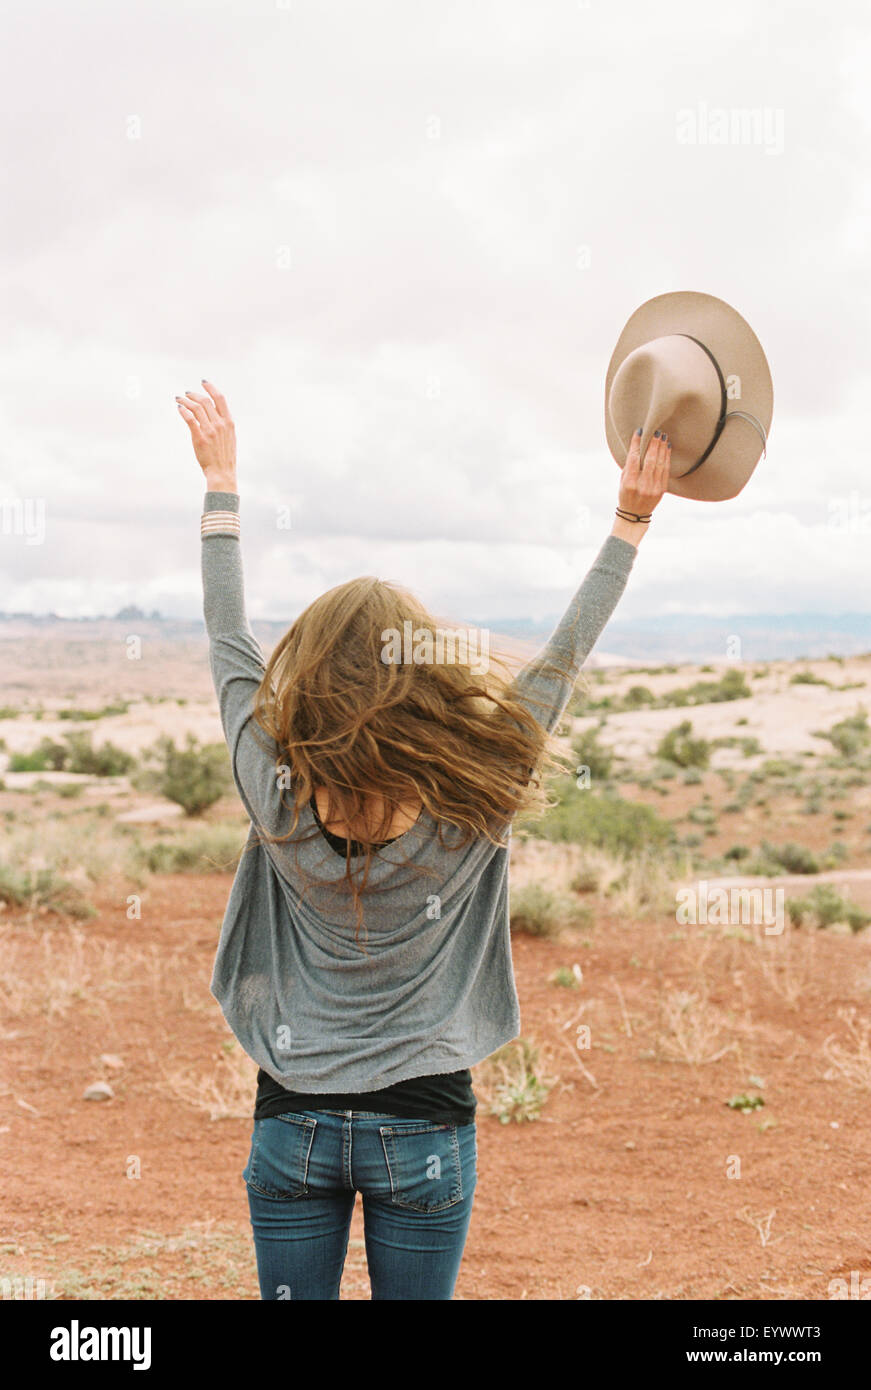 woman standing her arms raised up in the air. - Stock Image